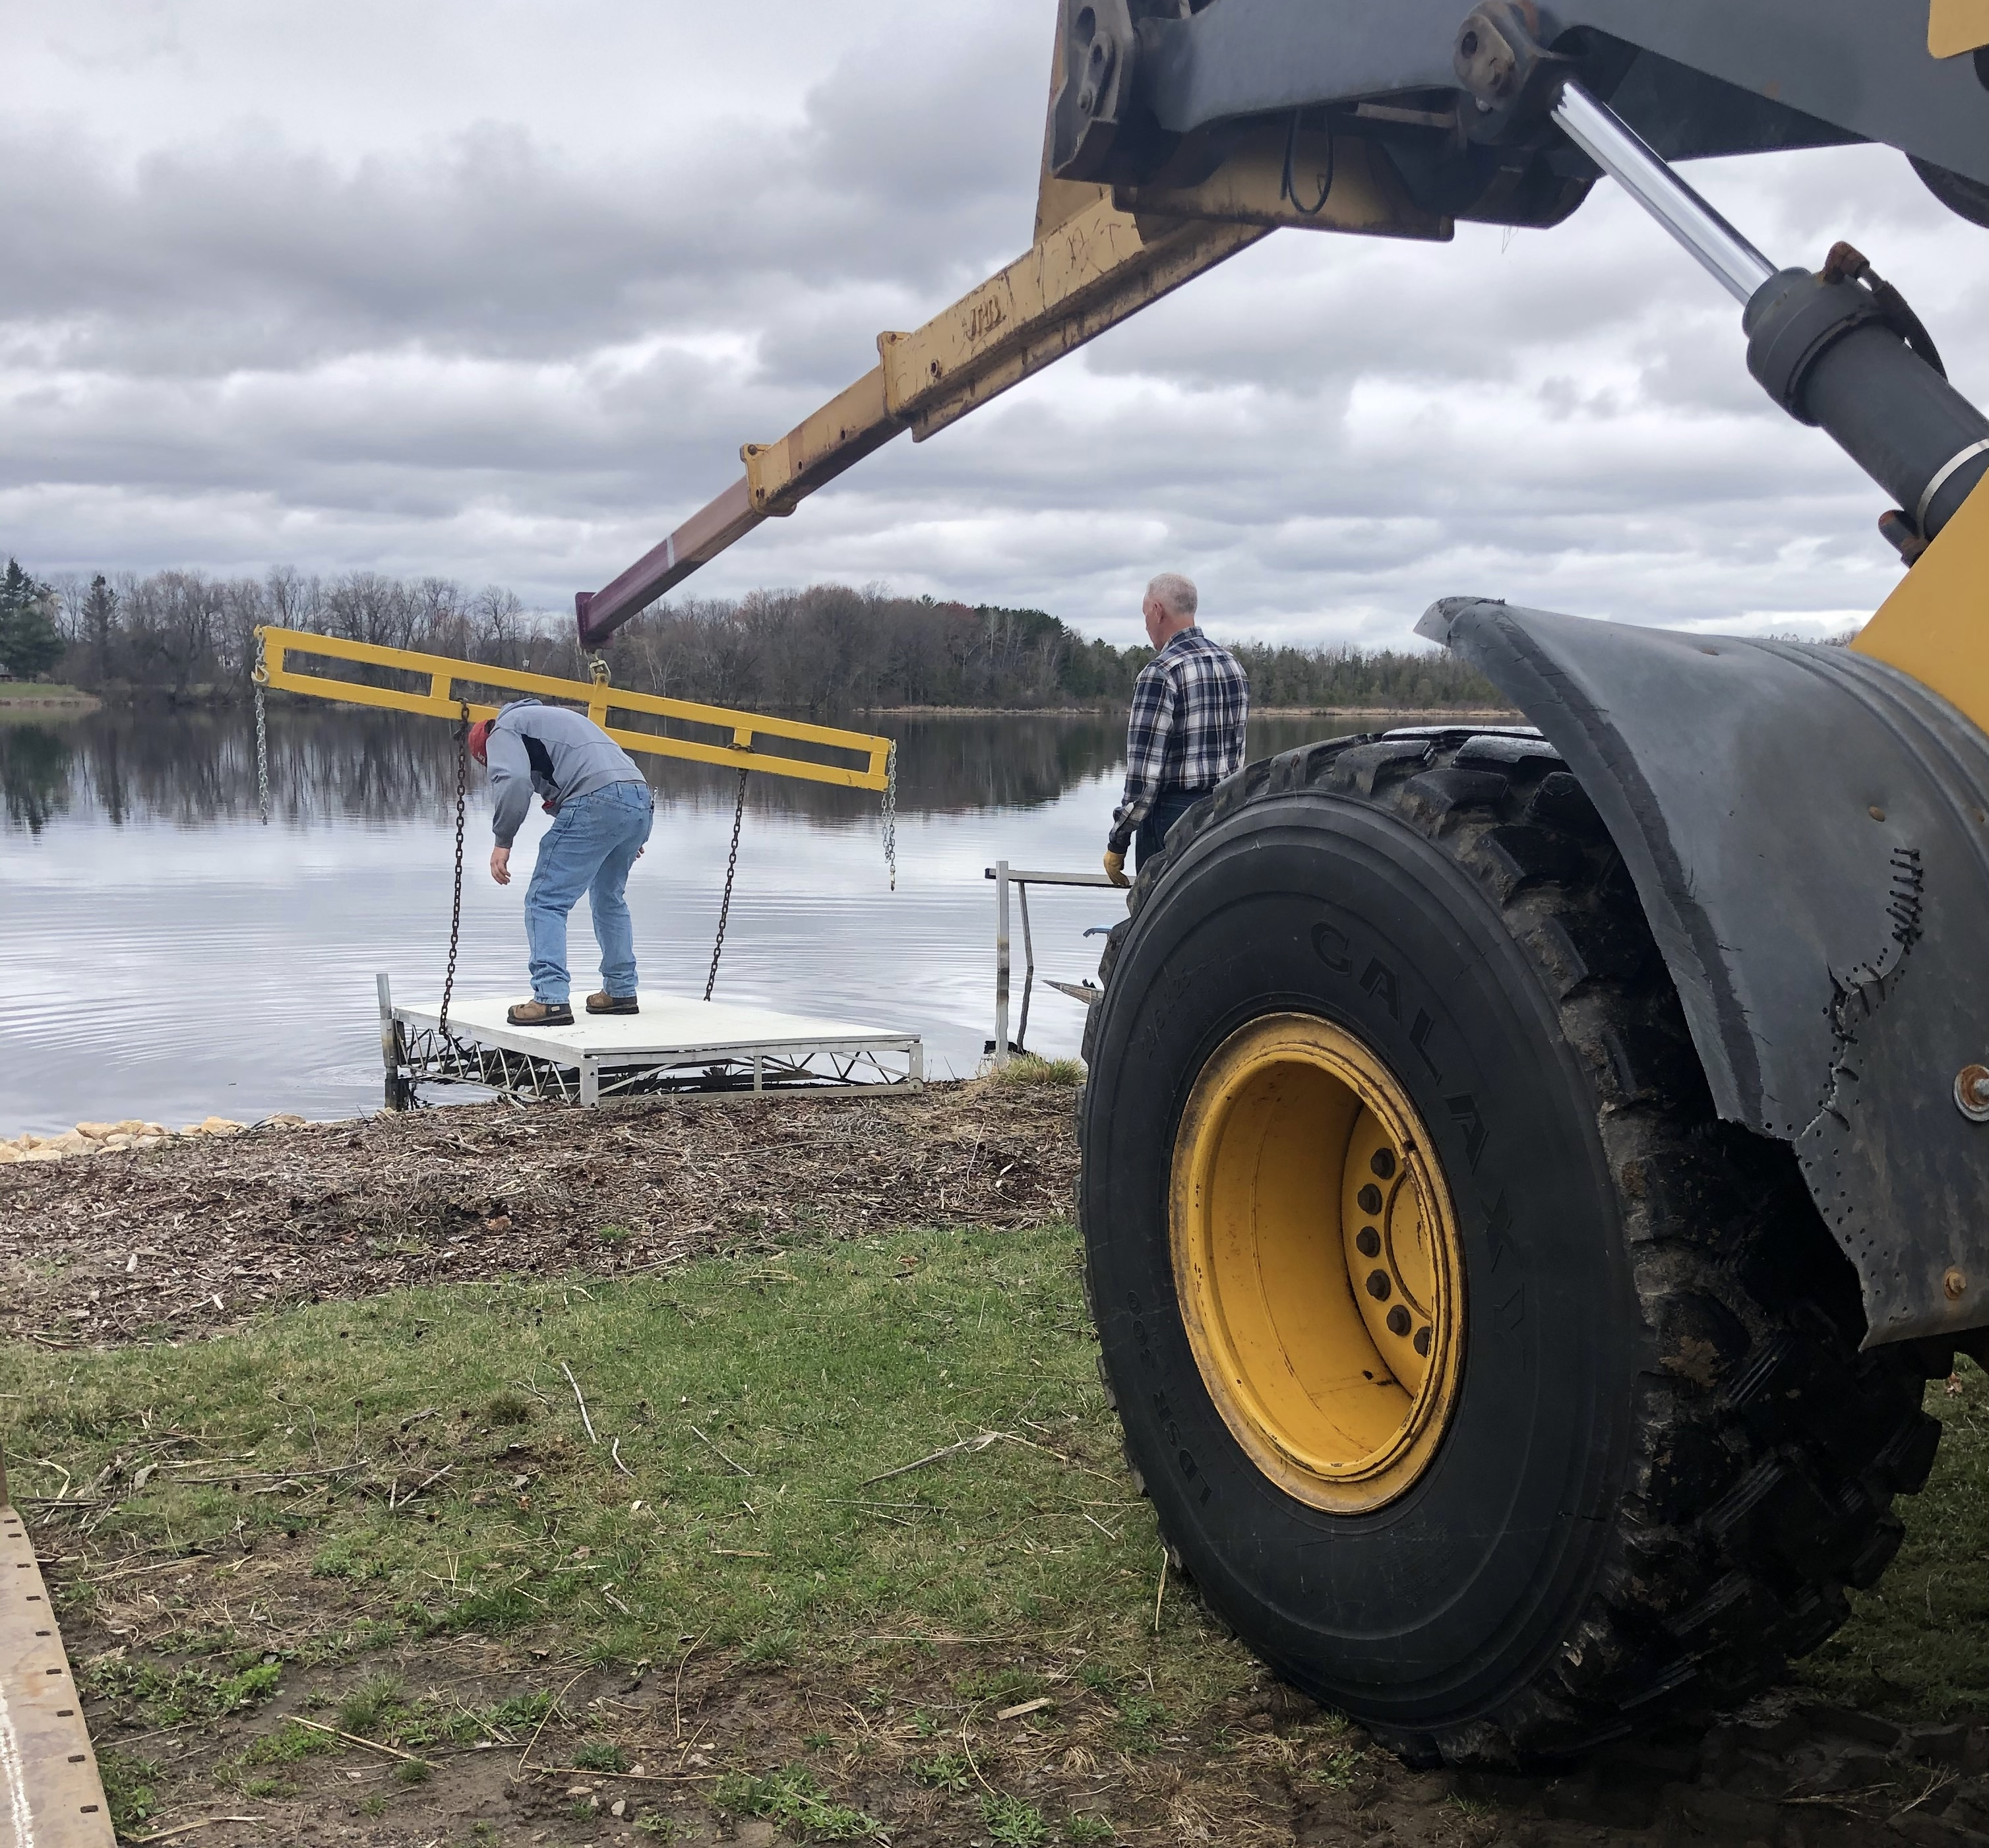 Shawano Ski Sharks seasonal preparation began placing docks, Saturday at their show site on the East bank of the Wolf River. The site is just North of Smalley Park in Shawano. The Shawano Ski Sharks 2021 season includes a performance every Wednesday June 9- August 18, 2021.<br />Submitted Photo